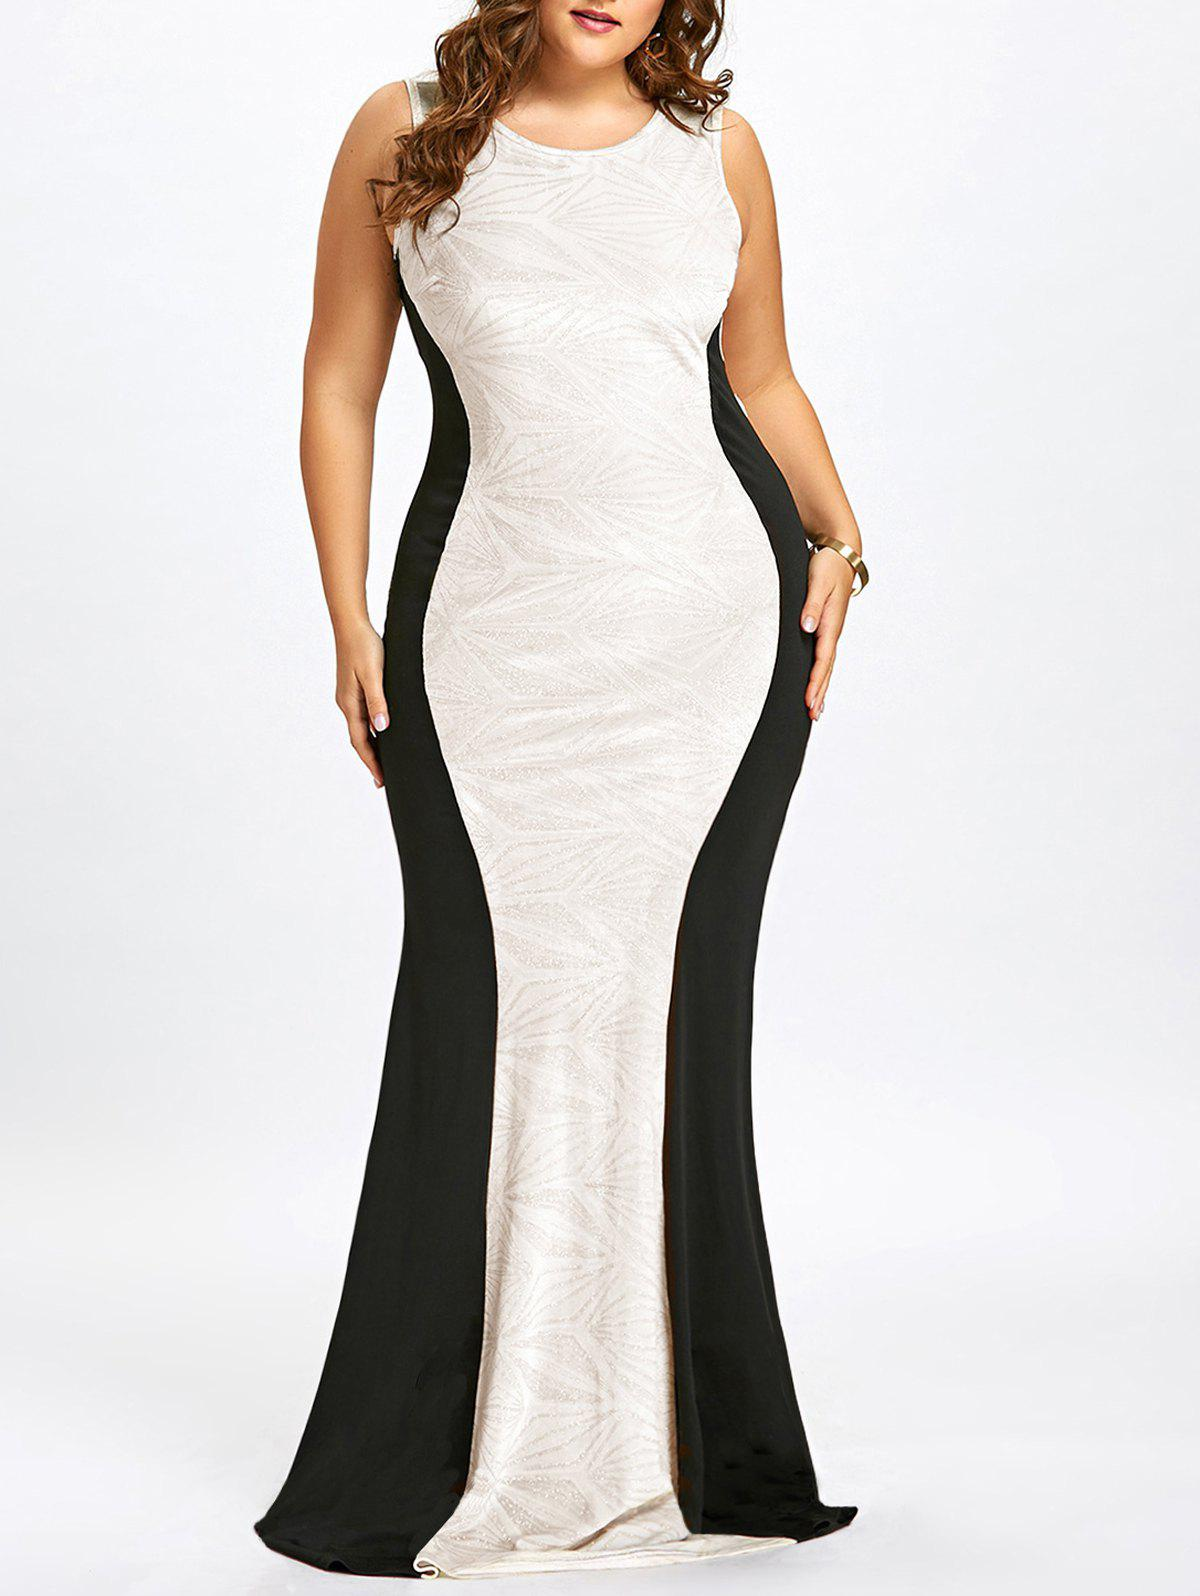 2018 Plus Size Cut Out Sleeveless Mermaid Gown WHITE XL In Dresses ...